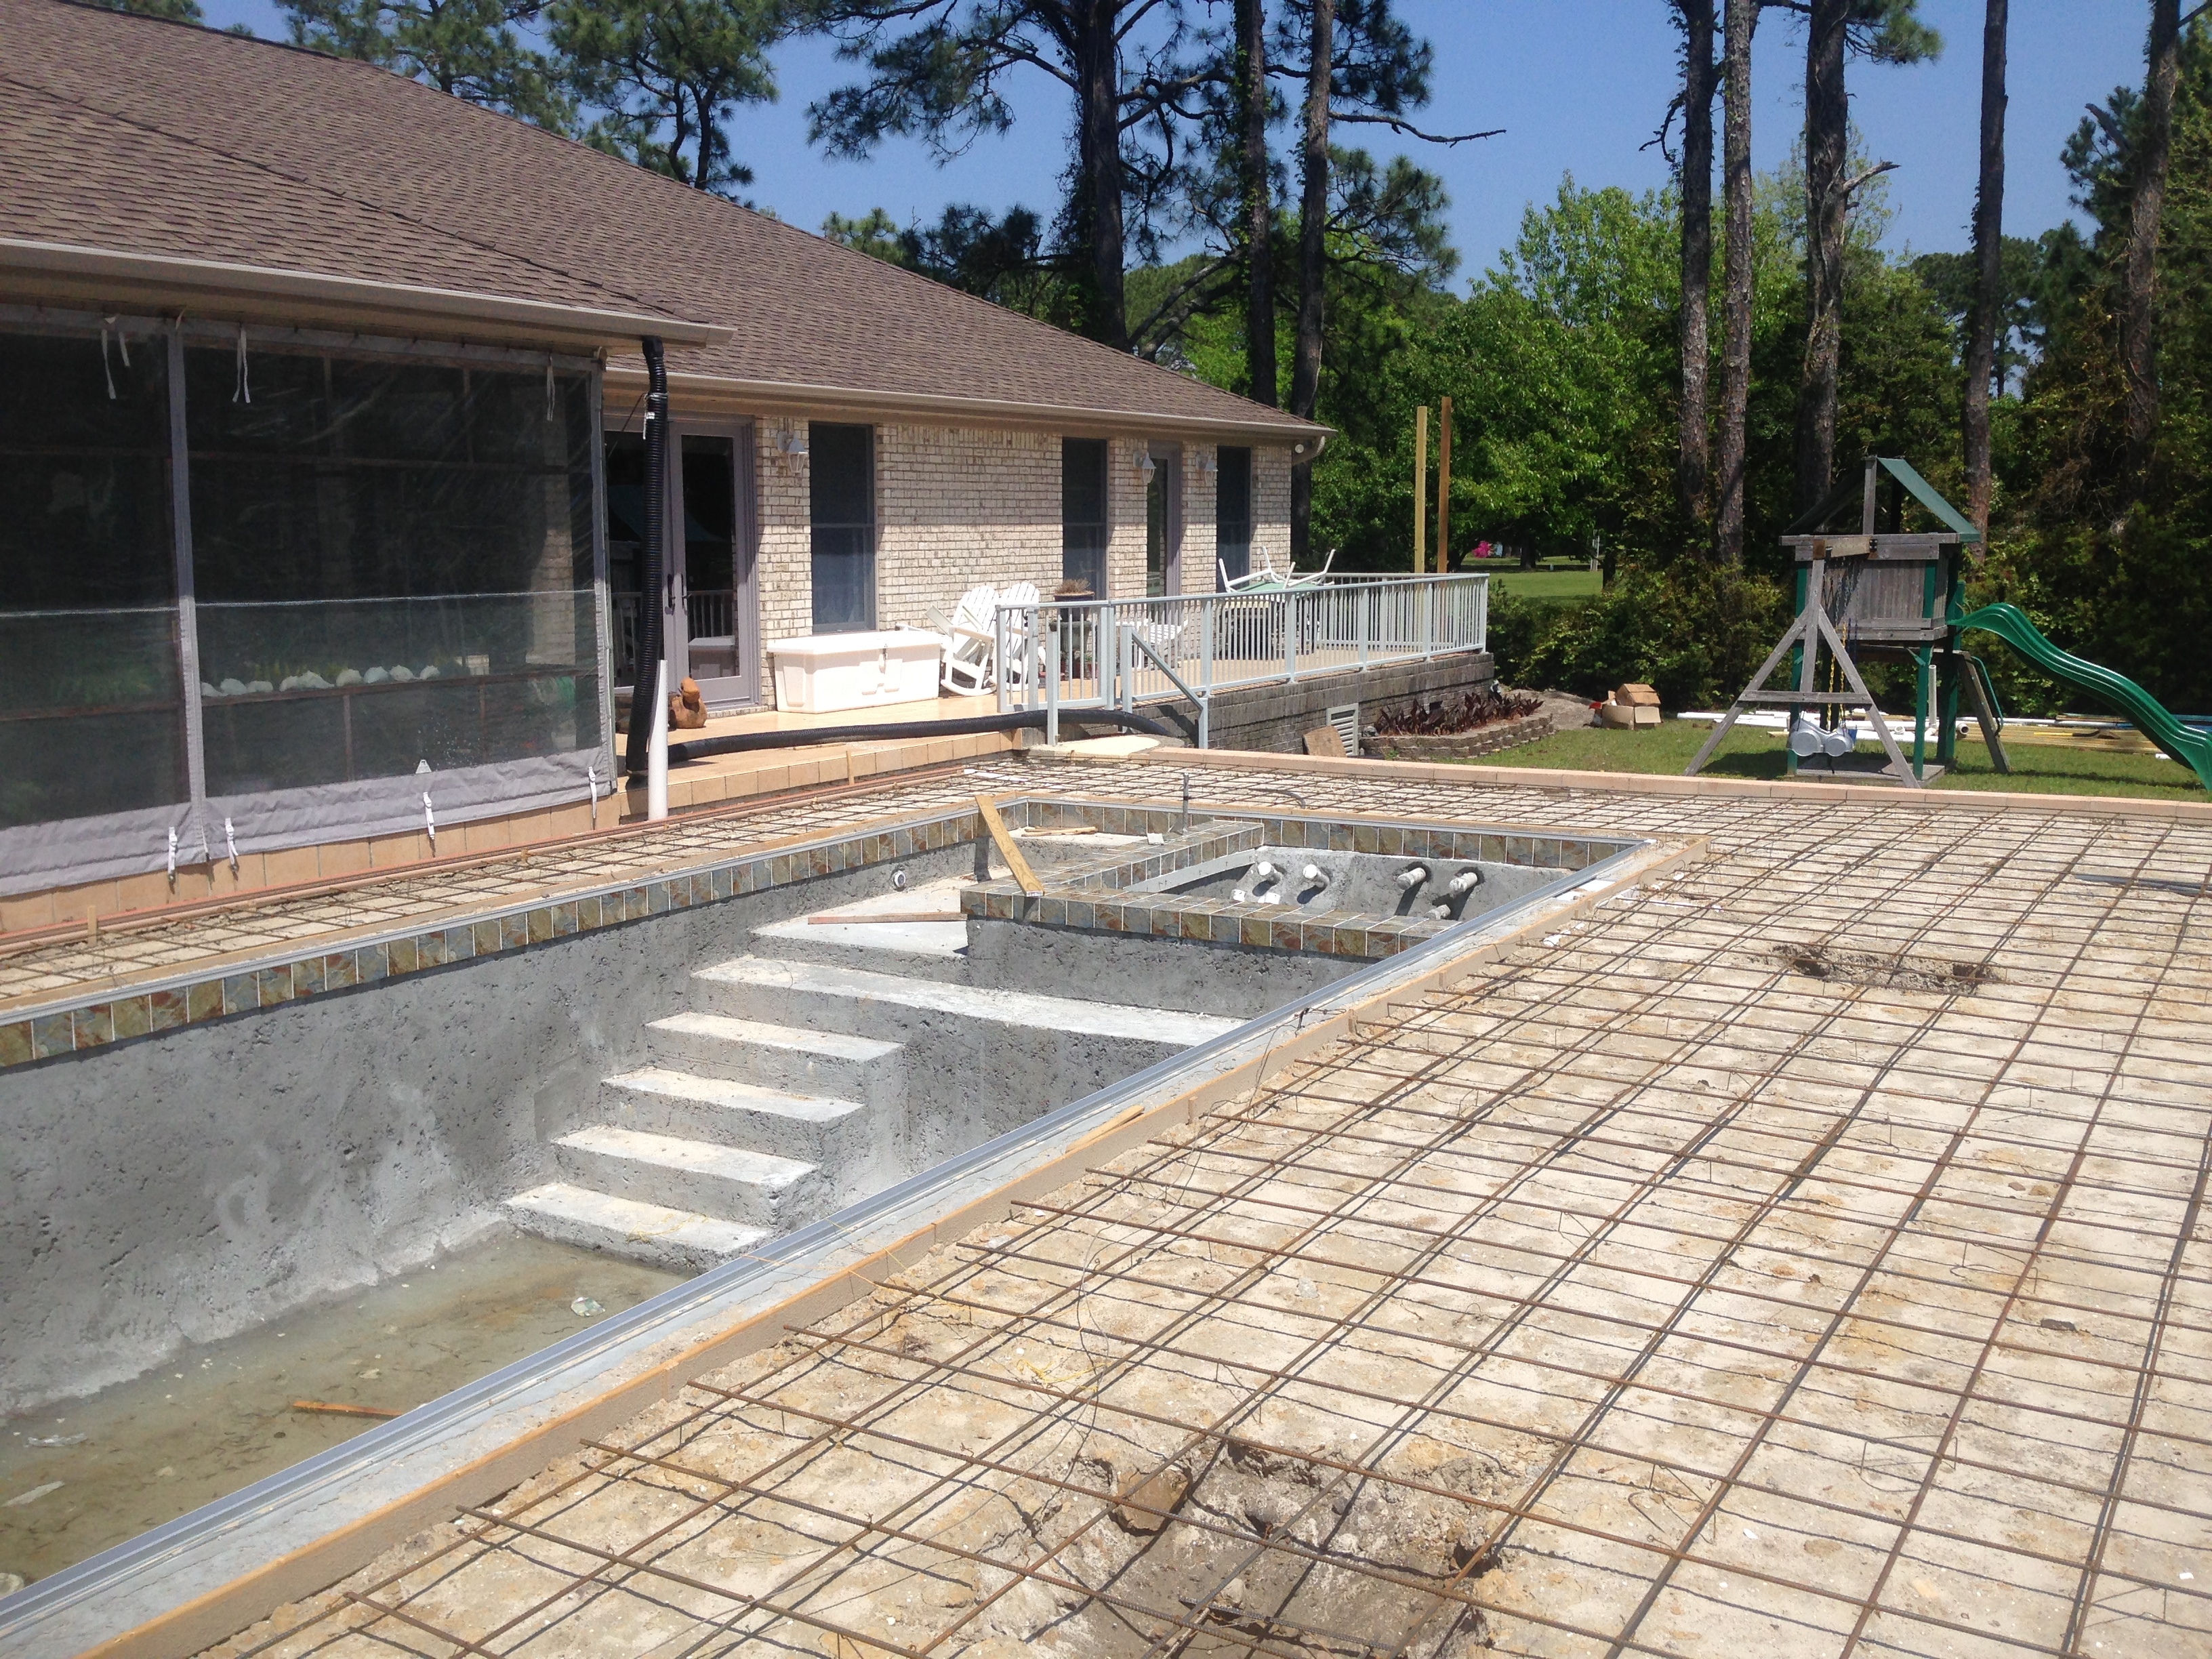 #3 Rebar all tied and ready for concrete to be pumped in for proper preparation of the Travertine Tile Installation